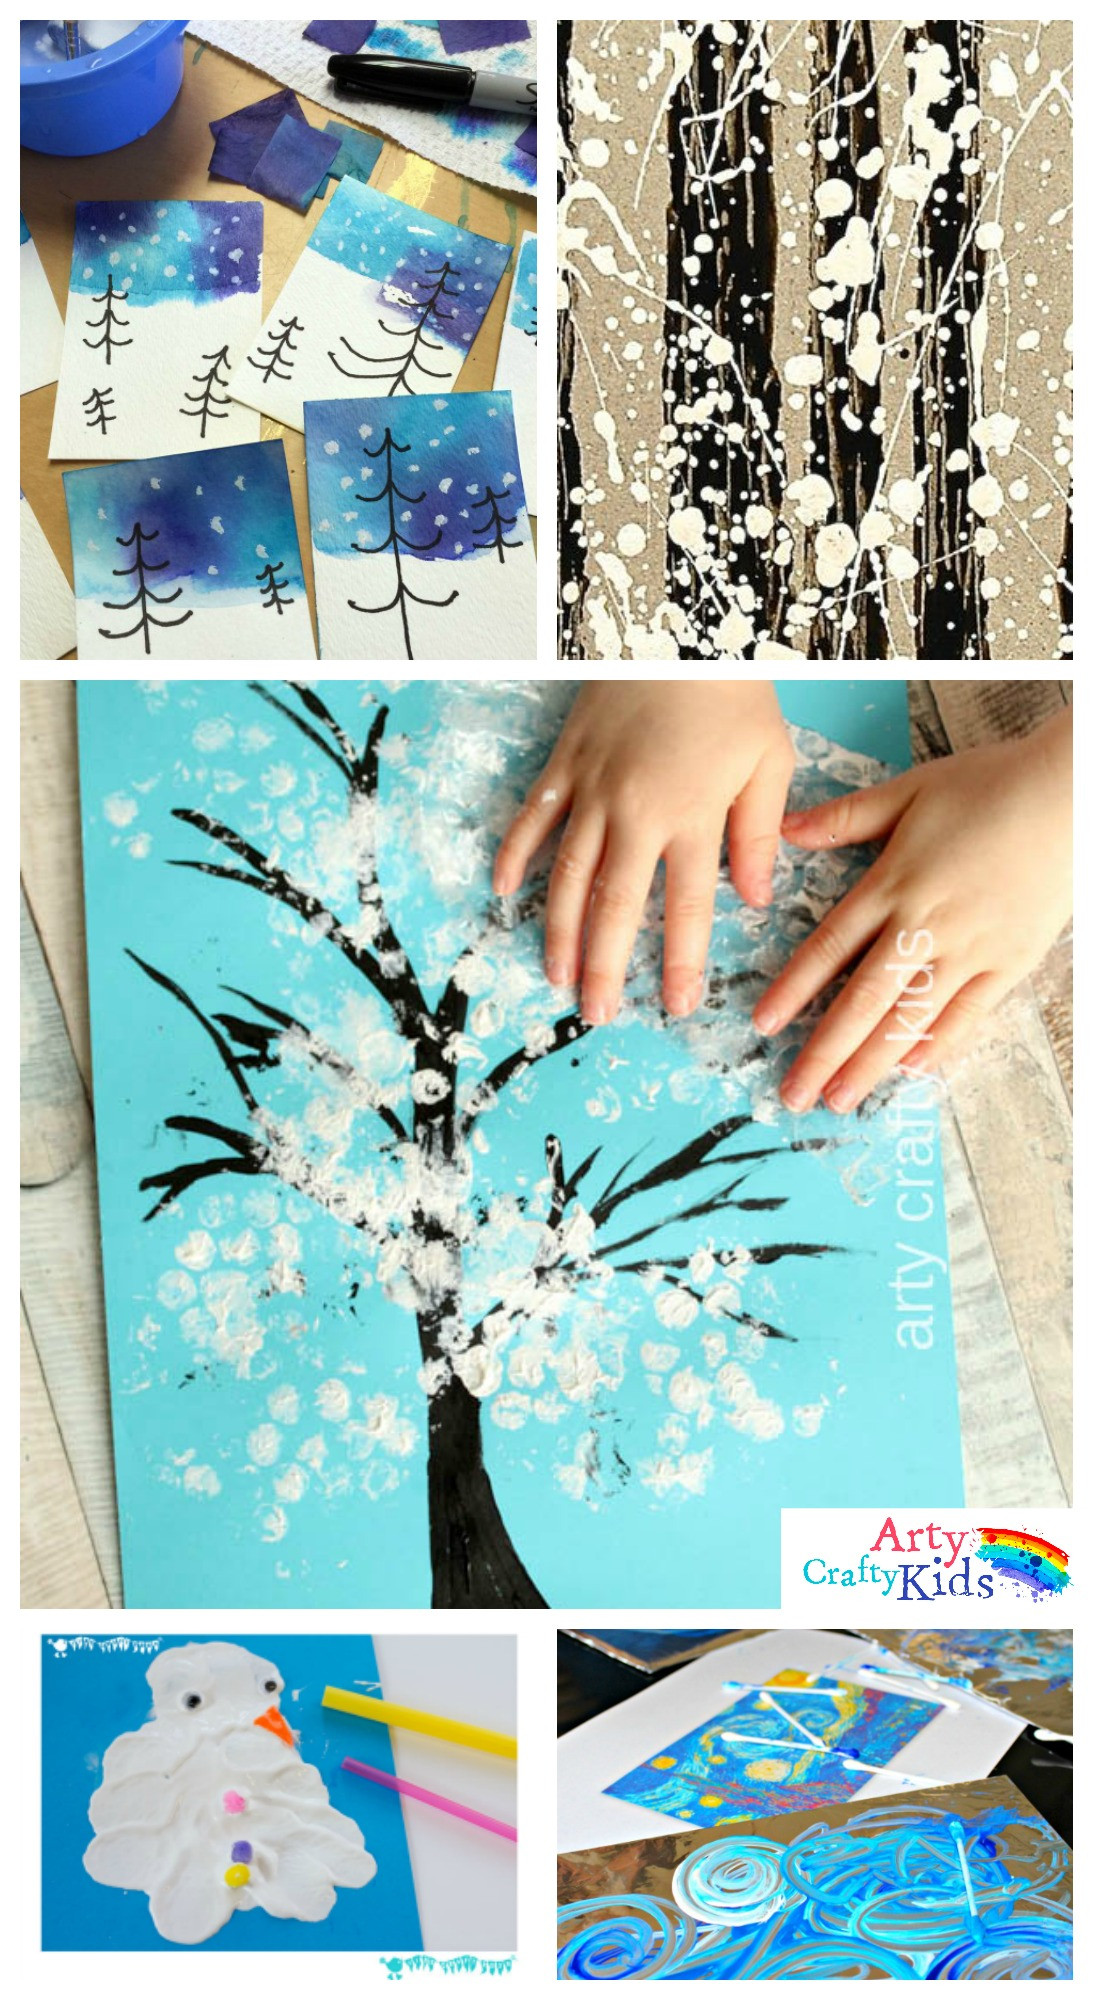 Preschool Art Project Ideas  14 Wonderful Winter Art Projects for Kids